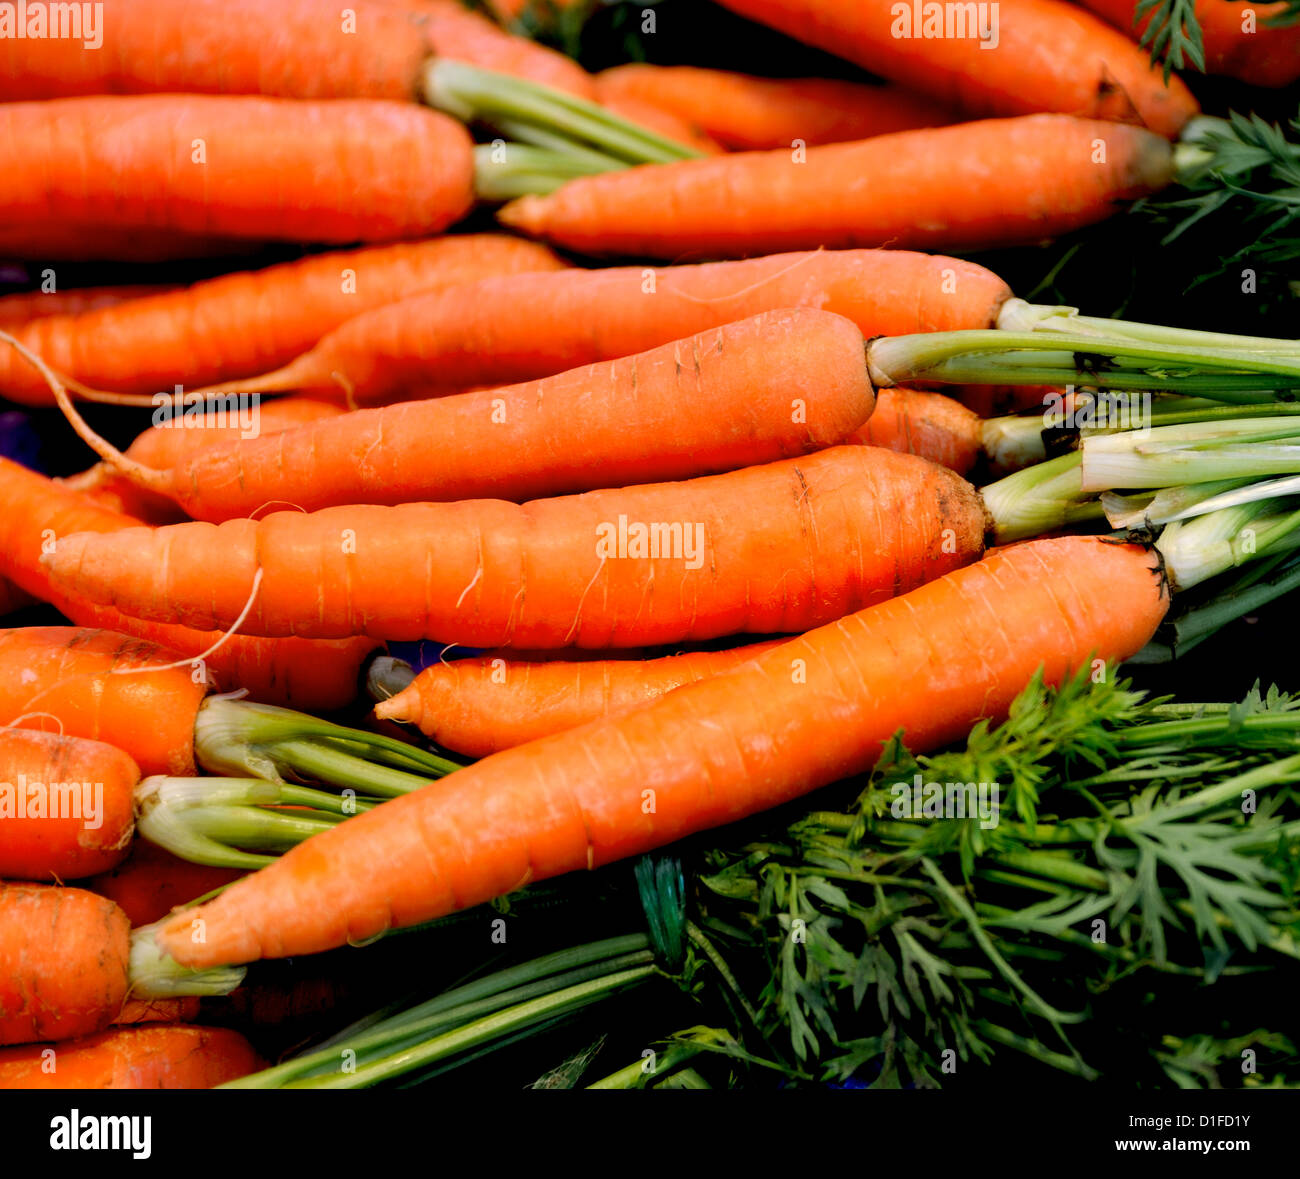 FRESH ORGANIC CARROTS WITH GREEN TOPS - Stock Image